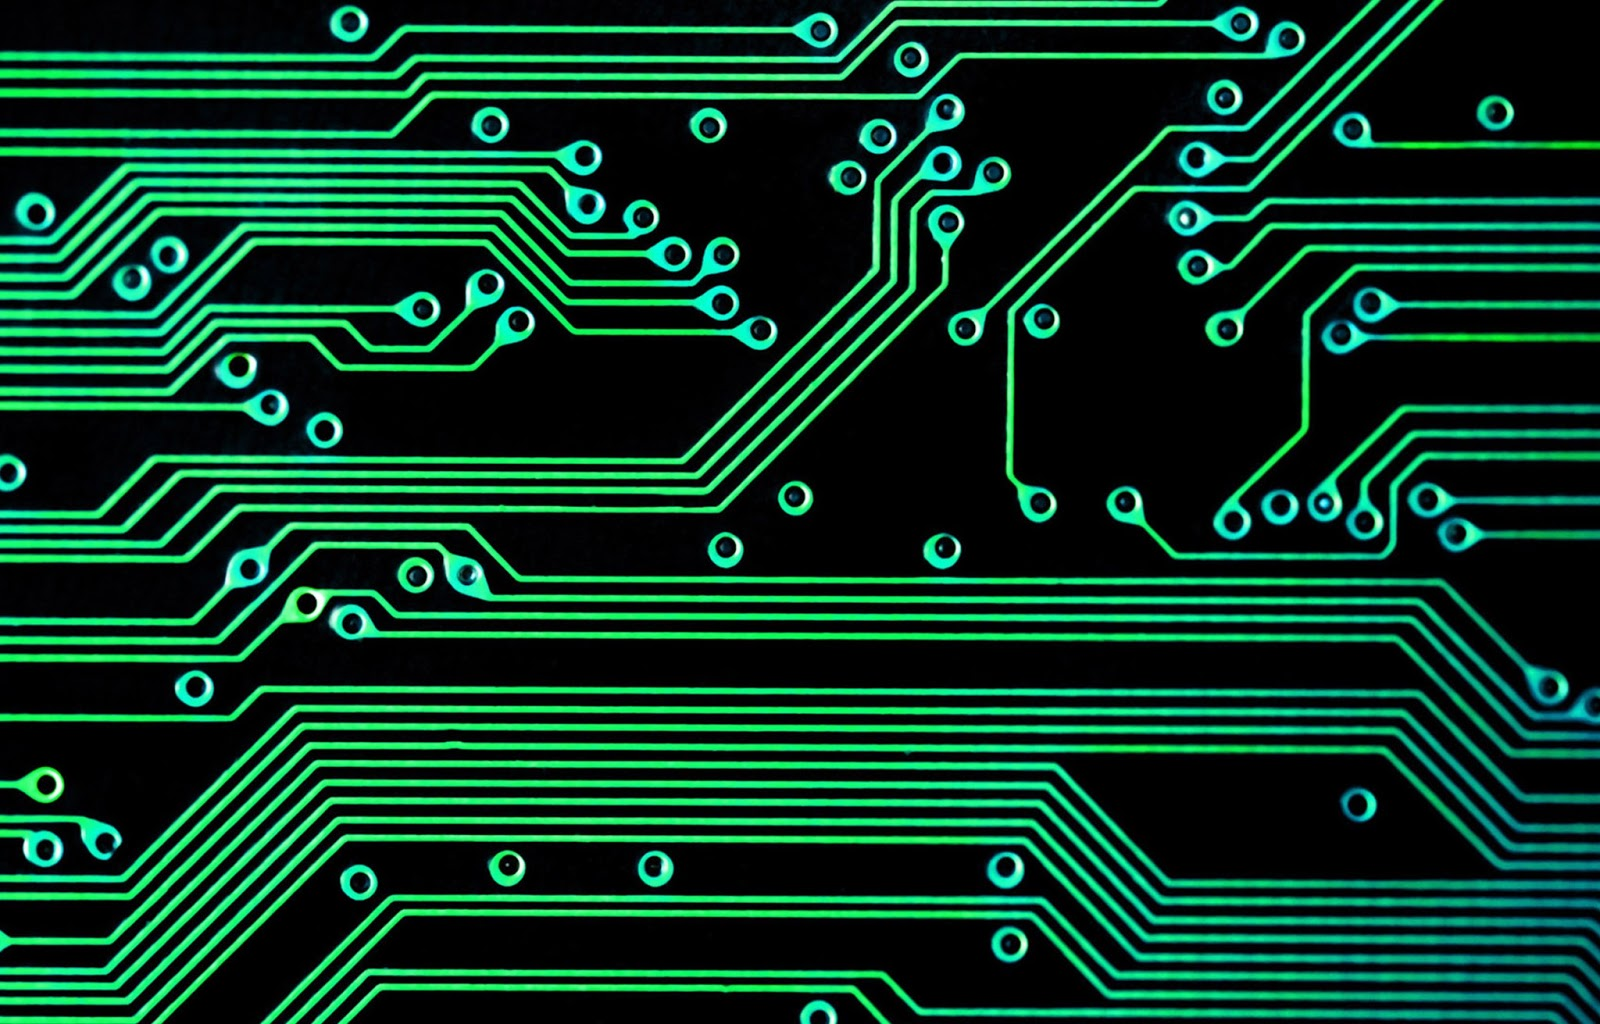 circuitry definition of circuitry by merriamwebster - HD1600×1024